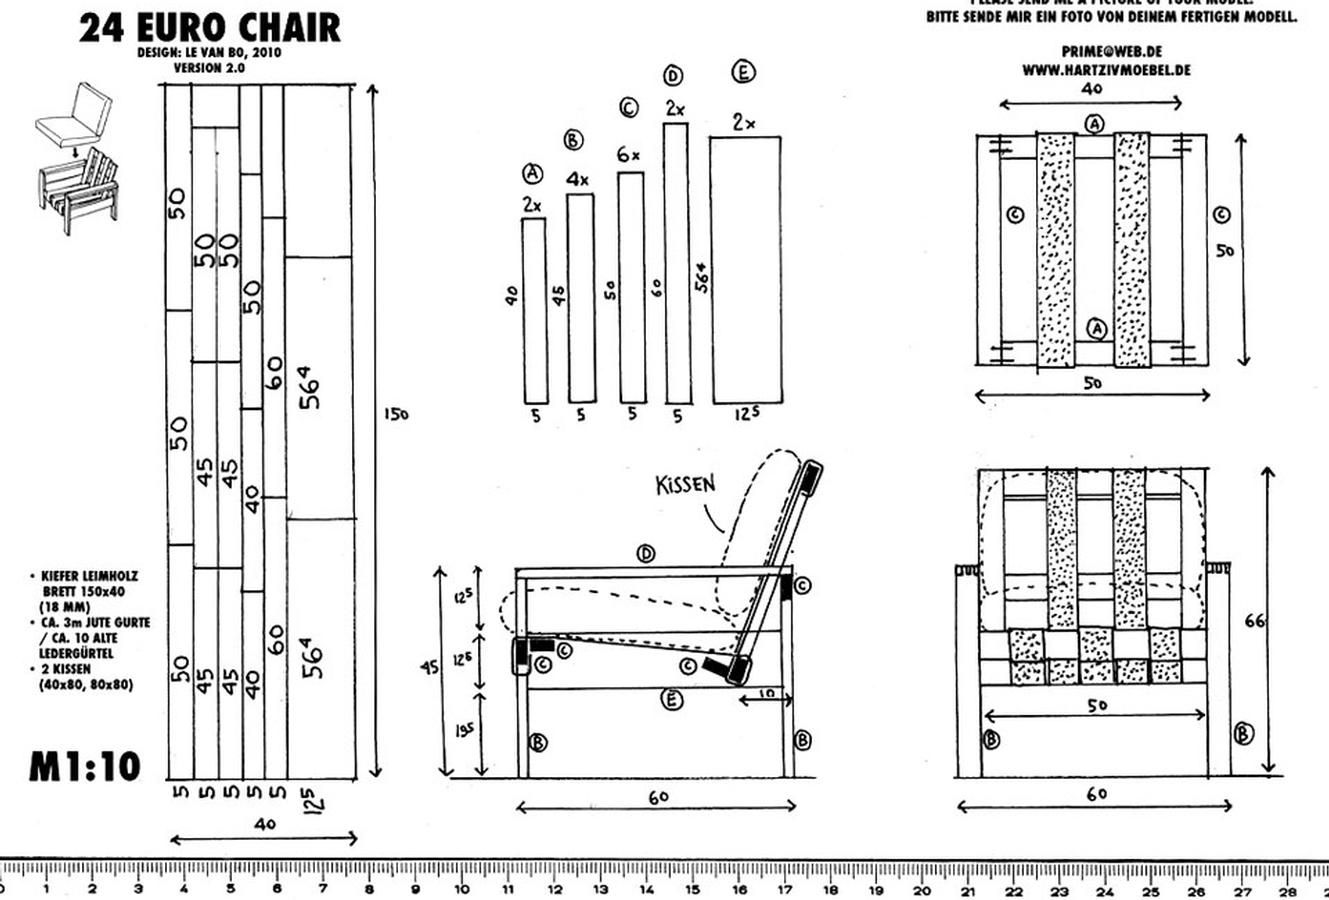 sessel 24 euro chair drawings and assembly instructions for diy furniture by van bo le